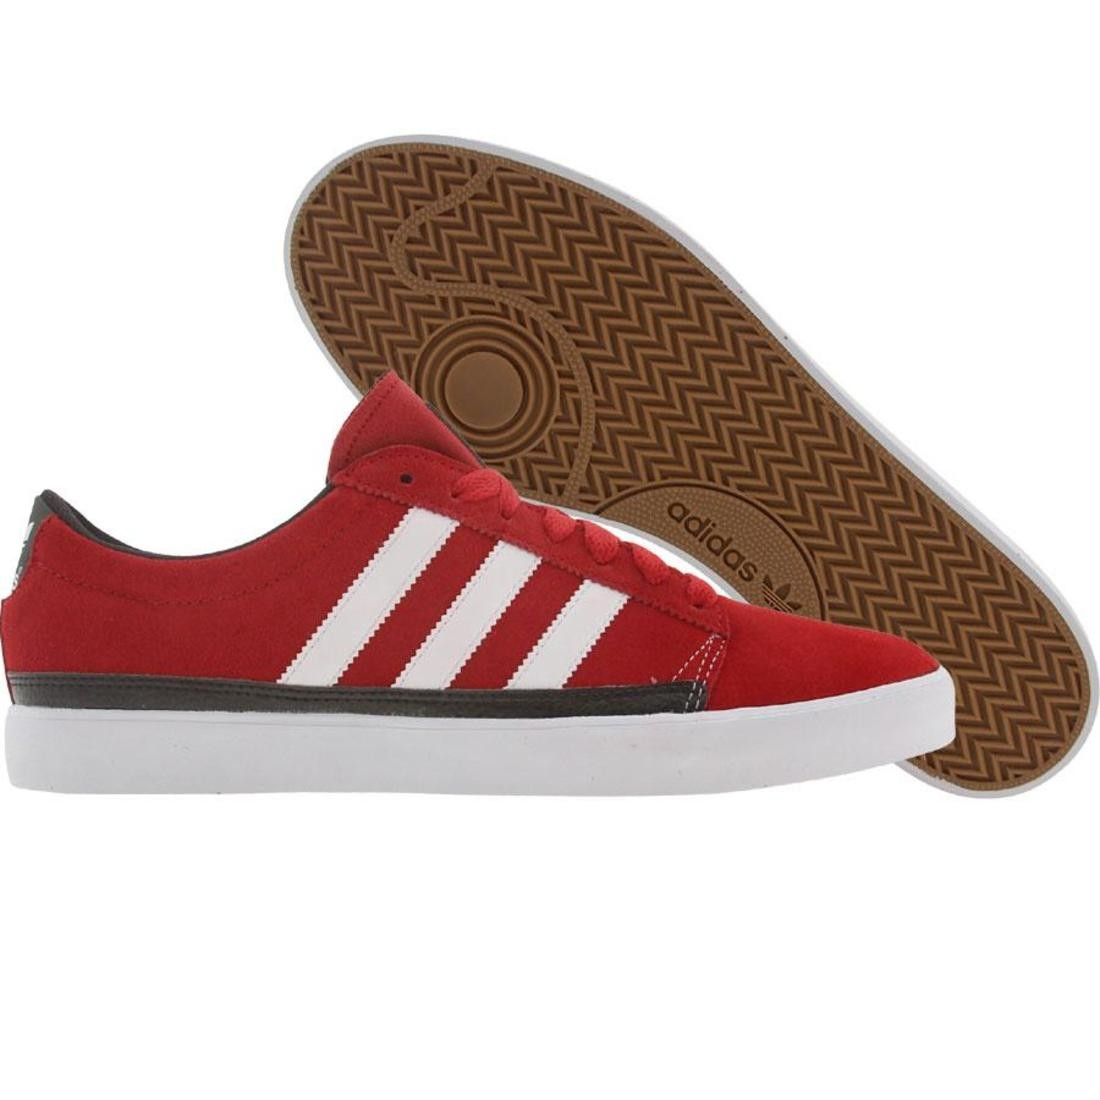 アディダス ADIDAS スケート 赤 レッド スニーカー メンズ 【 Skate Rayado Low (university Red / Runninwhite / Black) 】 University Red / Runninwhite / Black